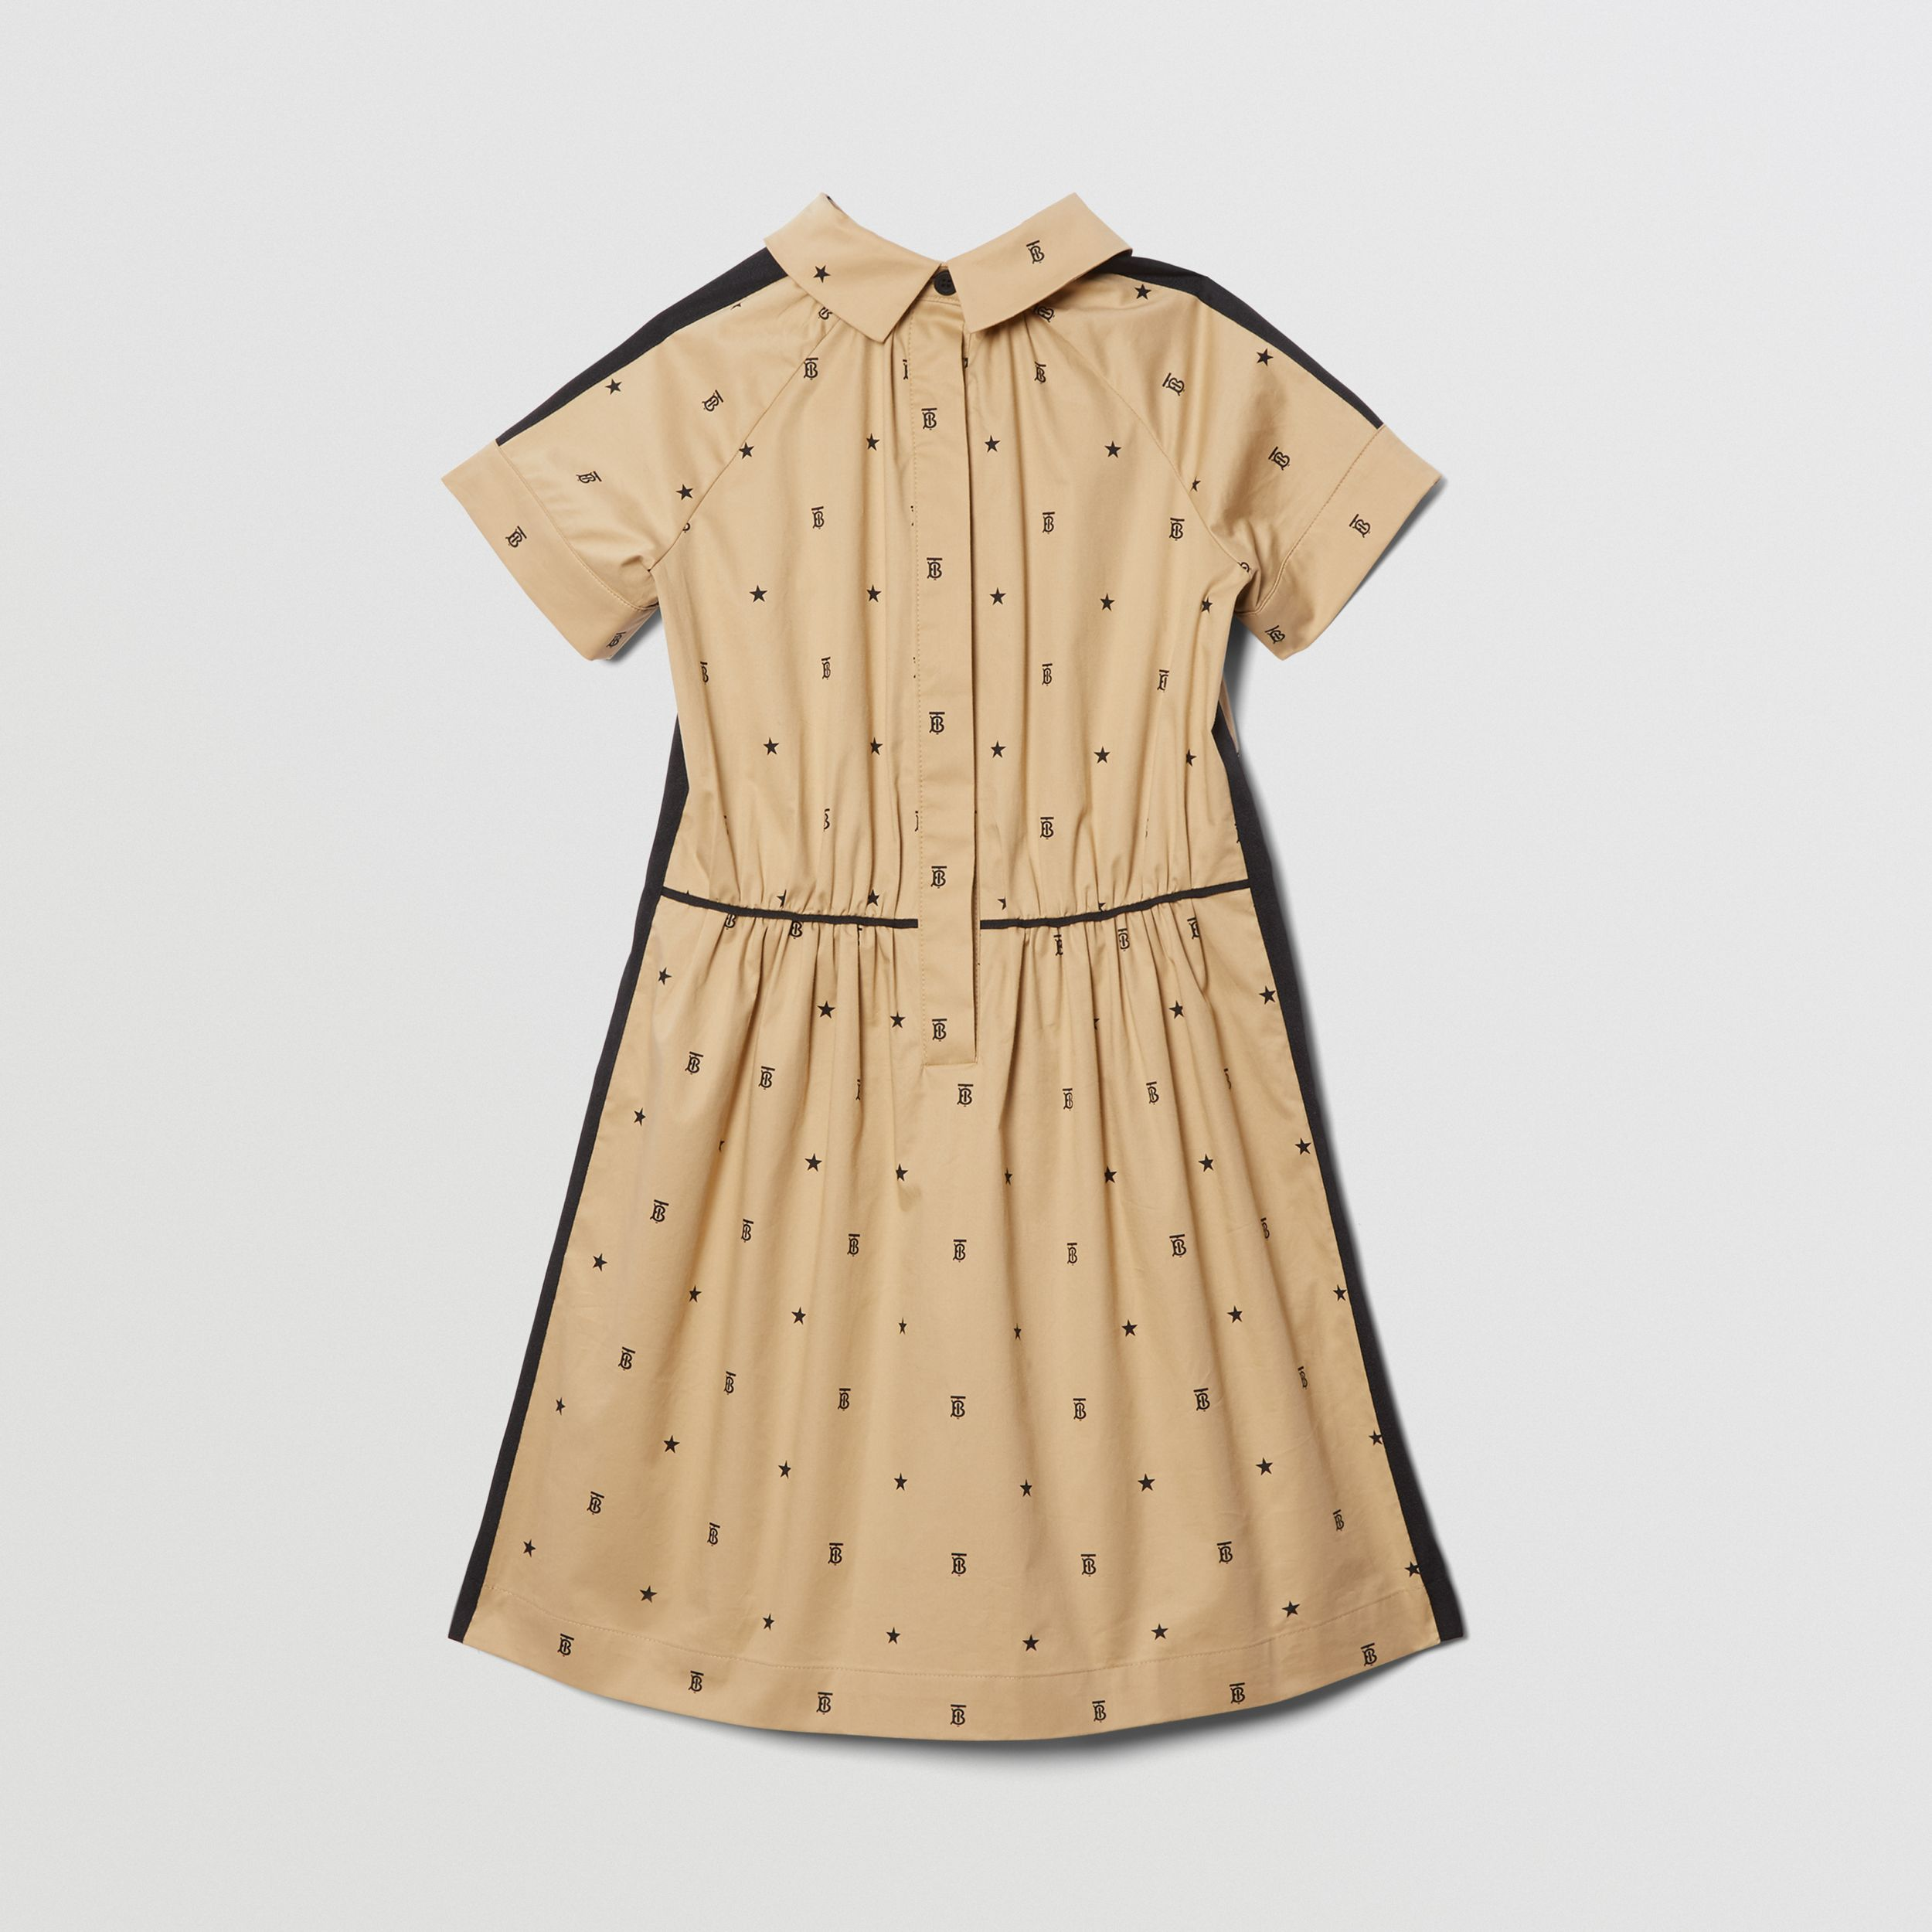 Star and Monogram Motif Stretch Cotton Dress in Sand | Burberry - 4